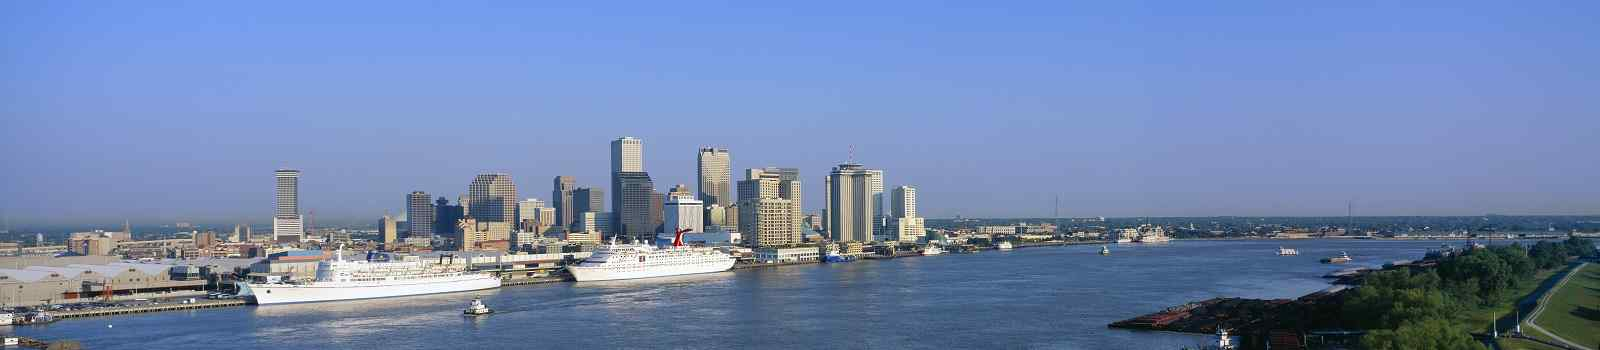 LOUISANA-RUNDREISE  New Orleans Skyline 177803234